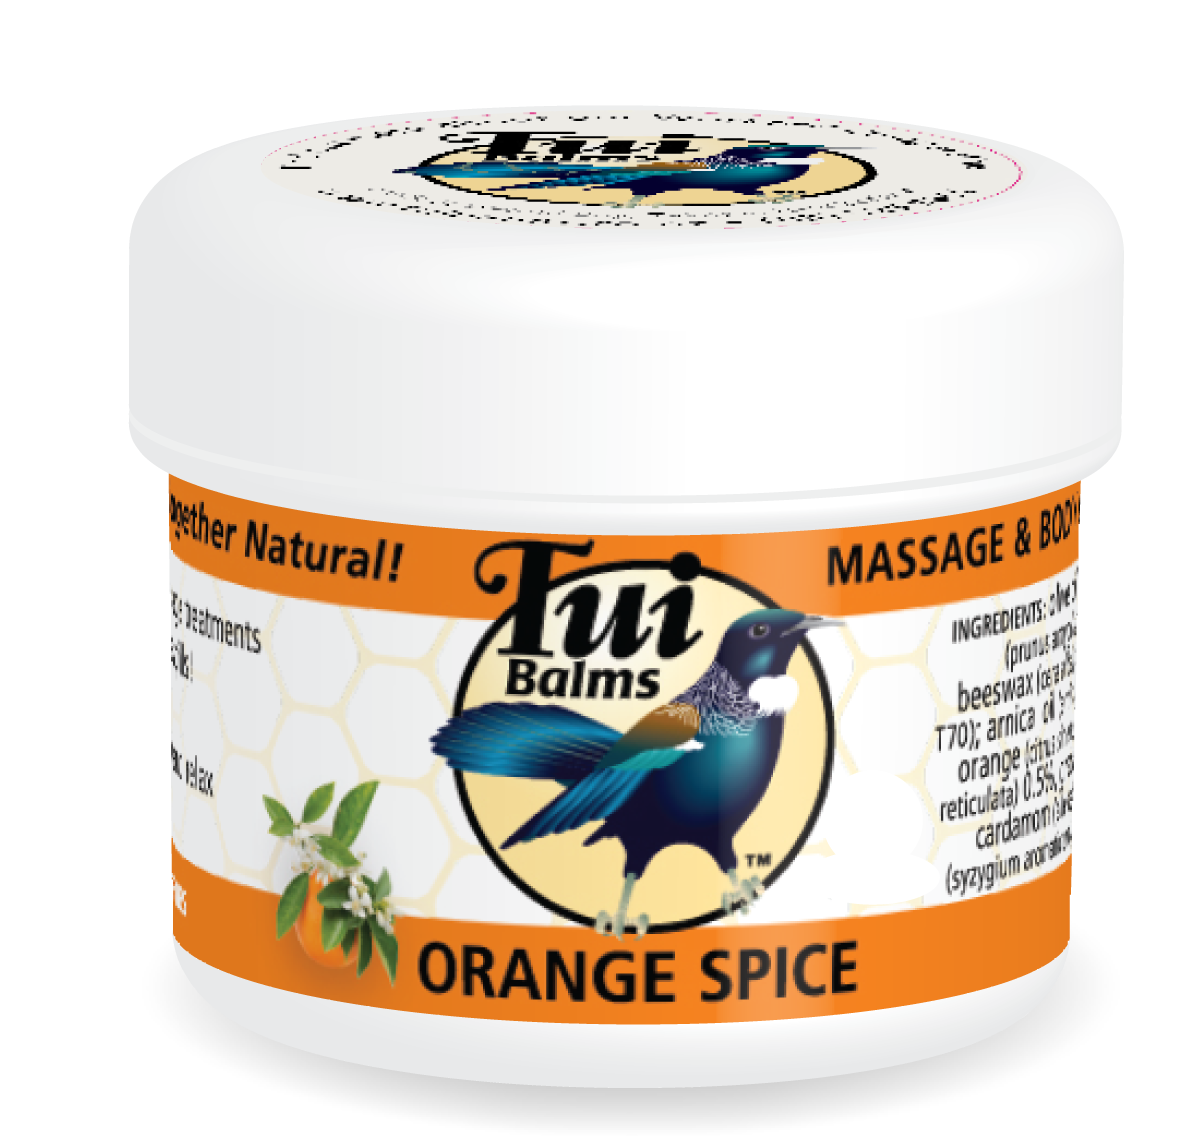 Massage & Body Balm ORANGE SPICE